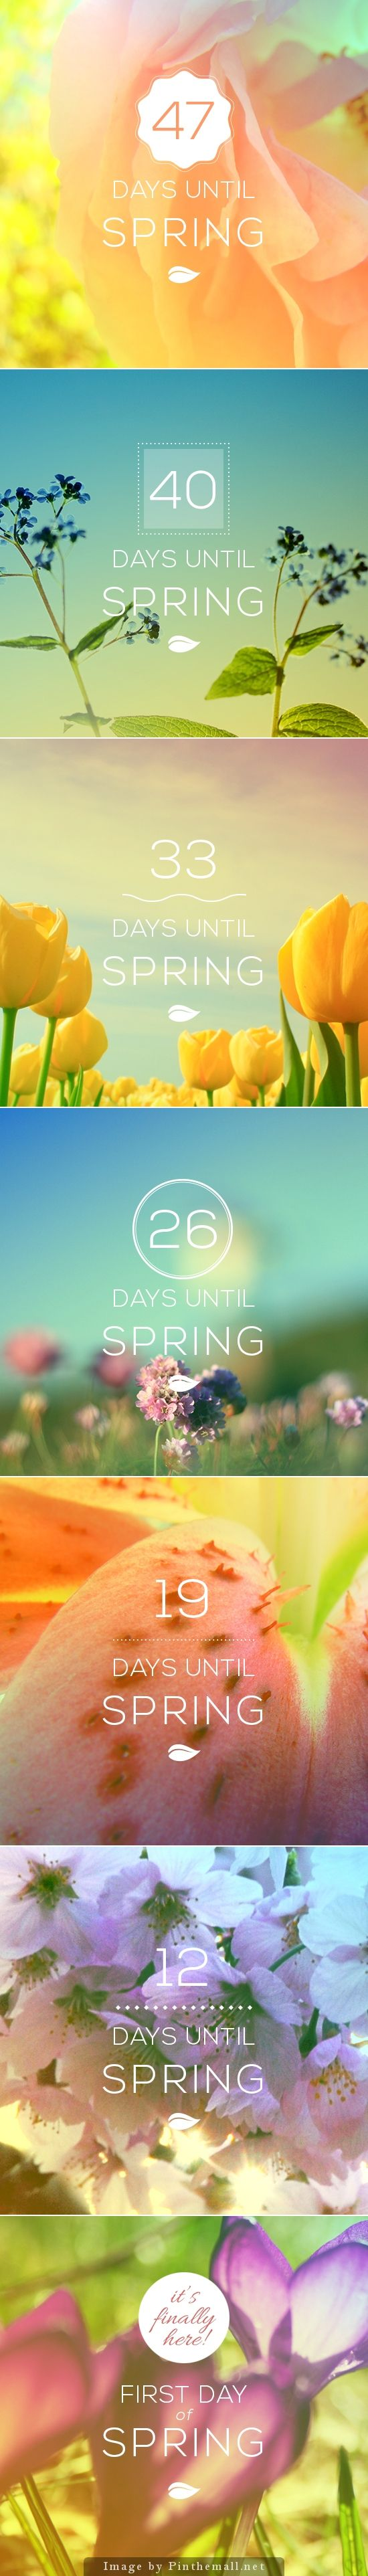 Countdown to Spring by Chris Sims